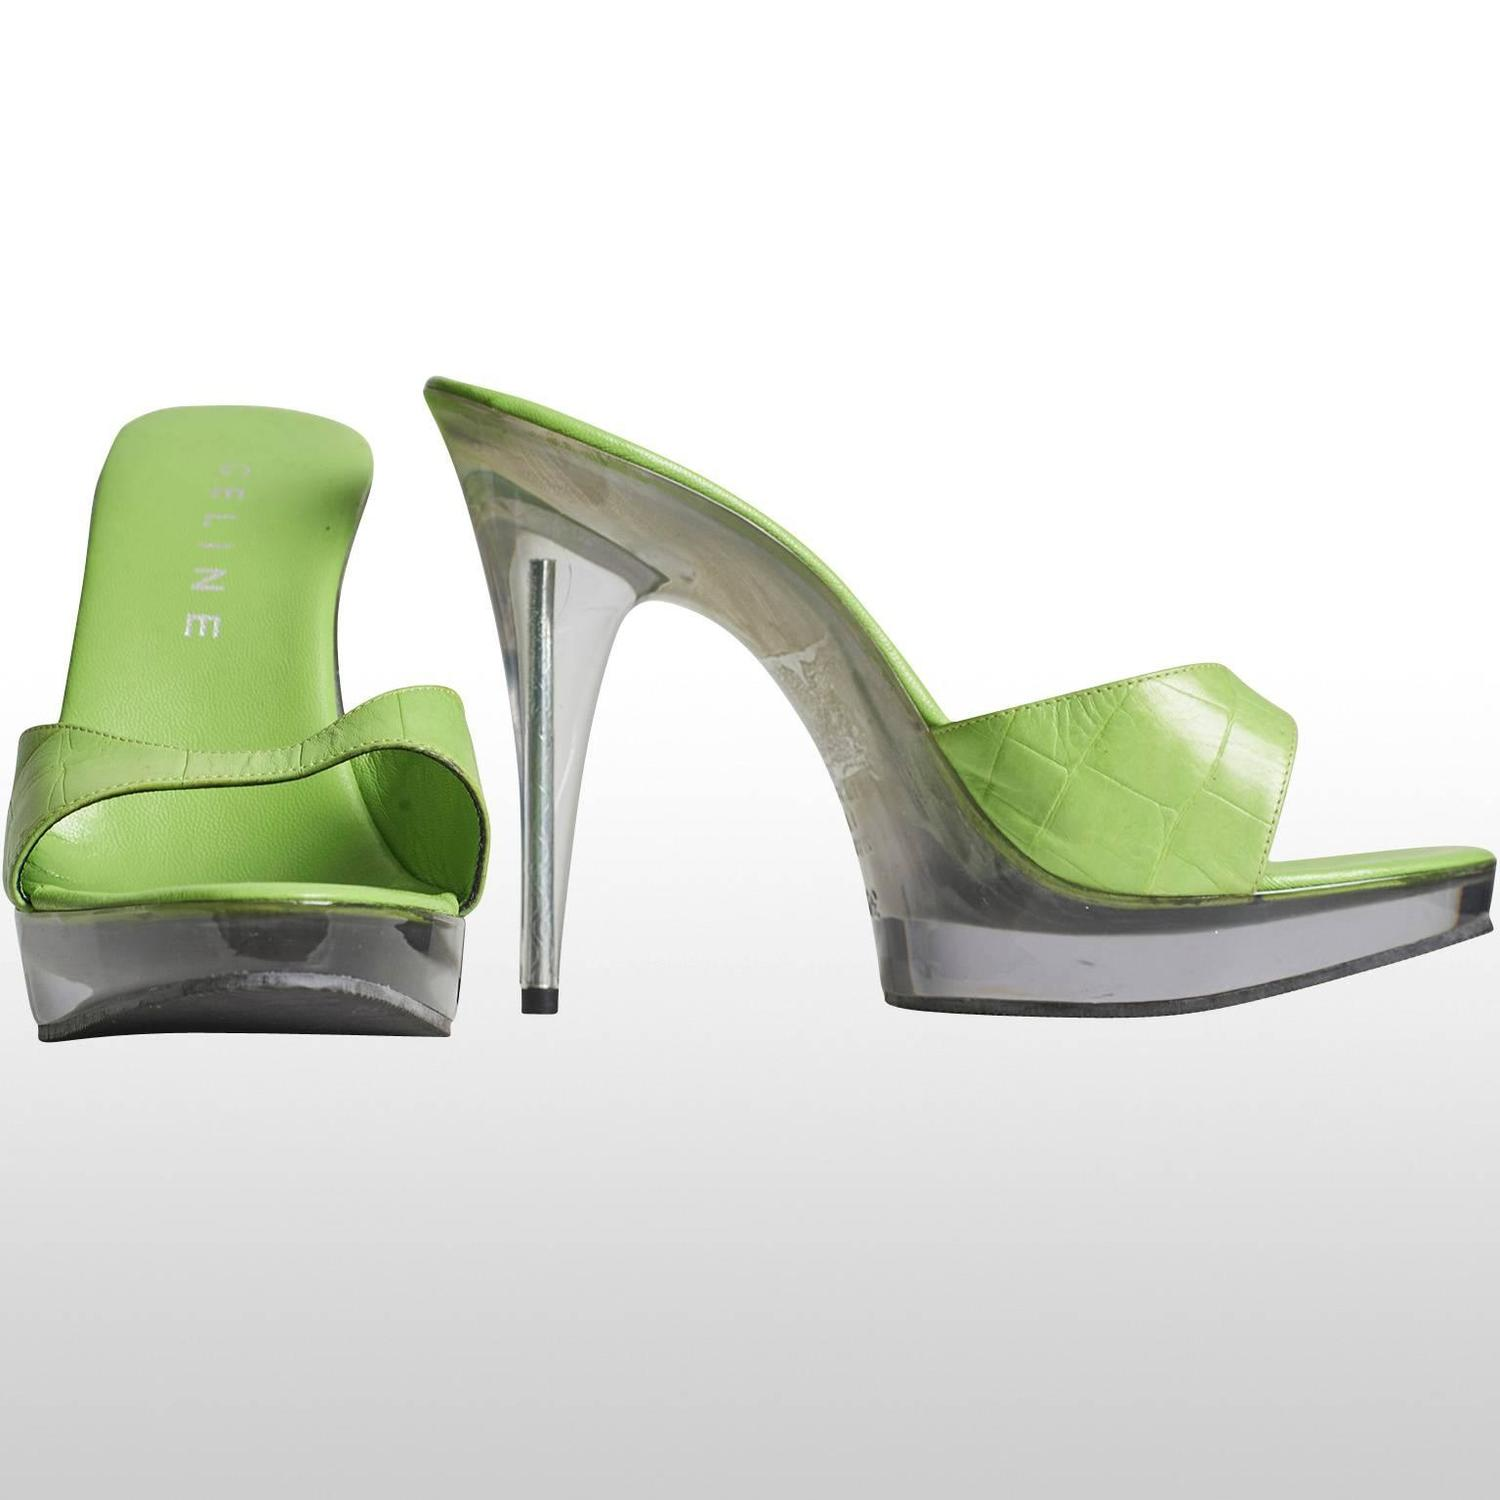 lime green heel with plastic platform and heel for